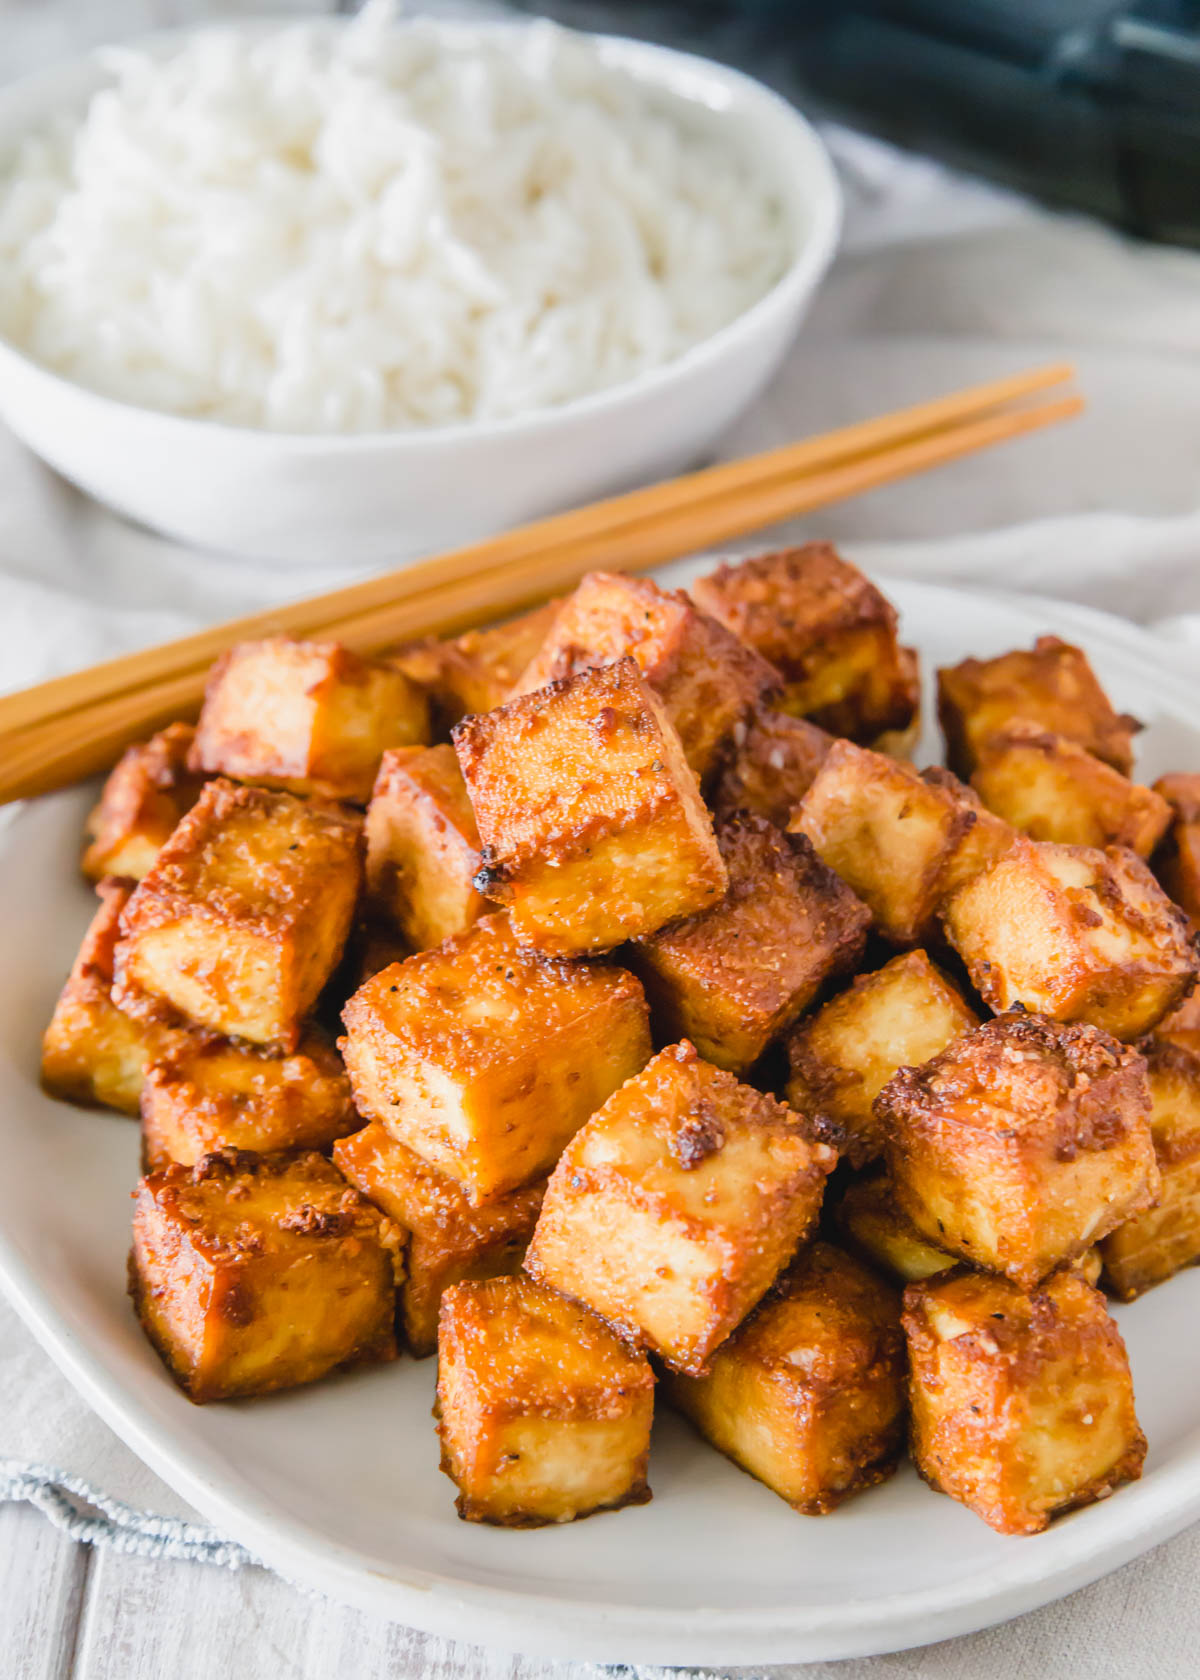 Making tofu in the air fryer is quick and simple with this easy recipe.